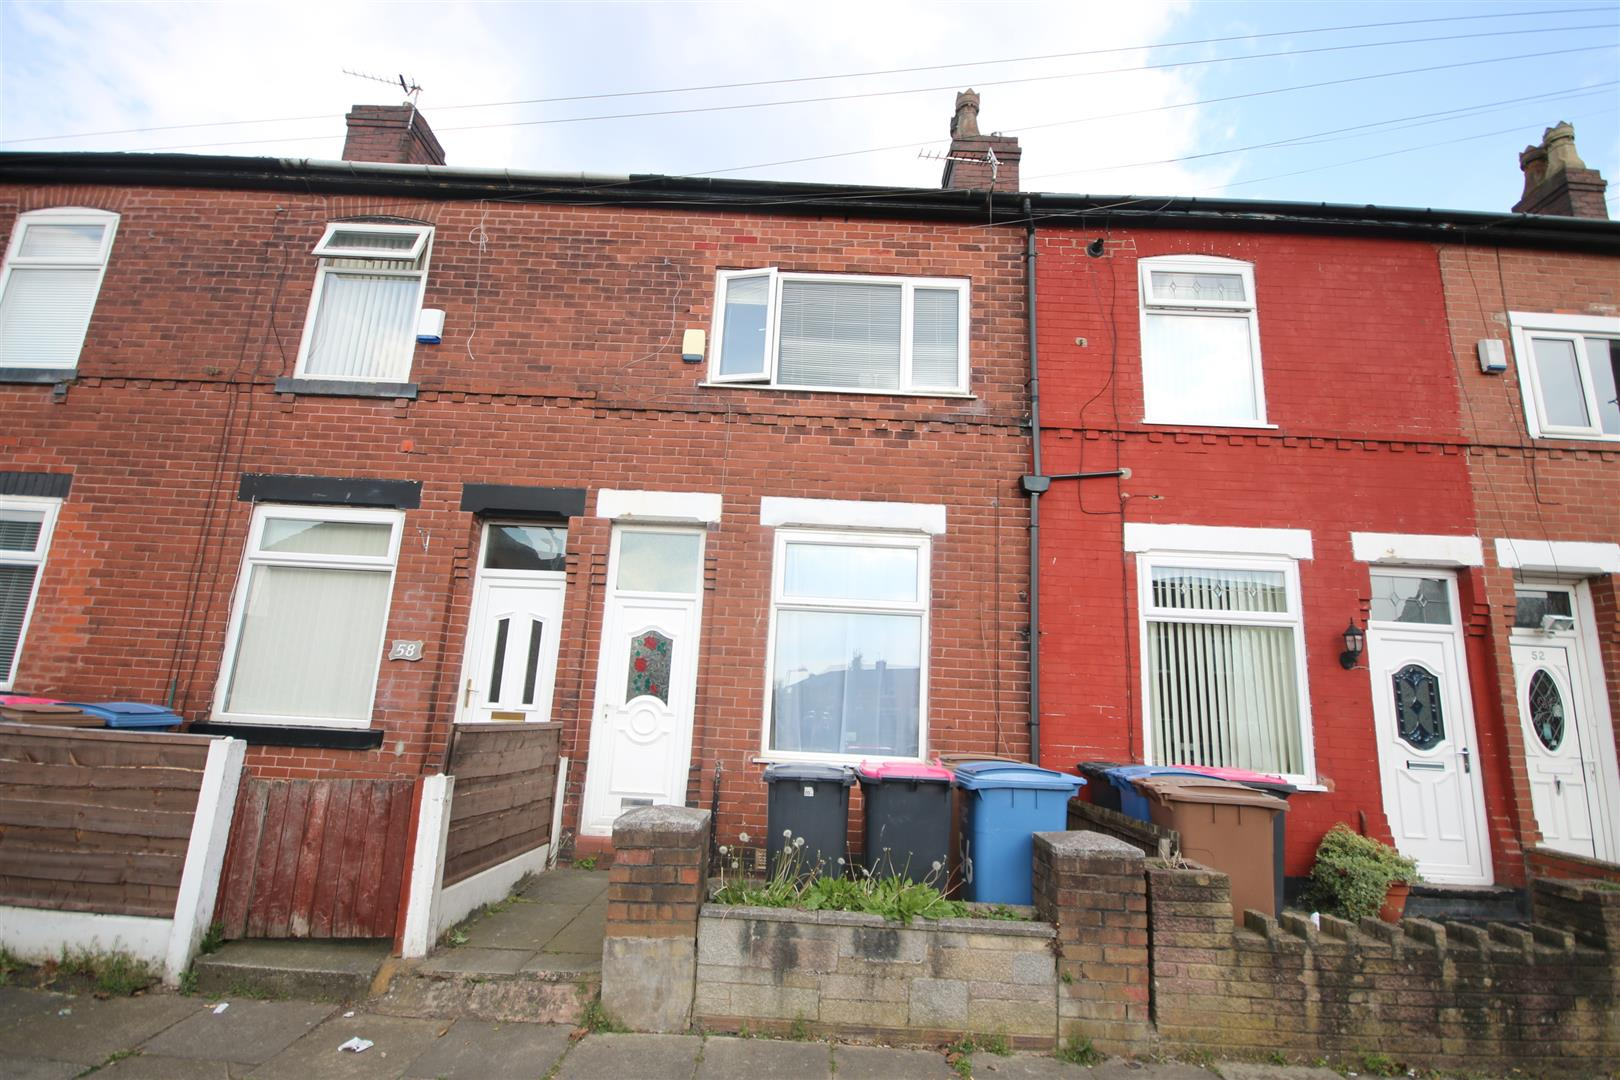 2 Bedroom House - Mid Terrace For Sale